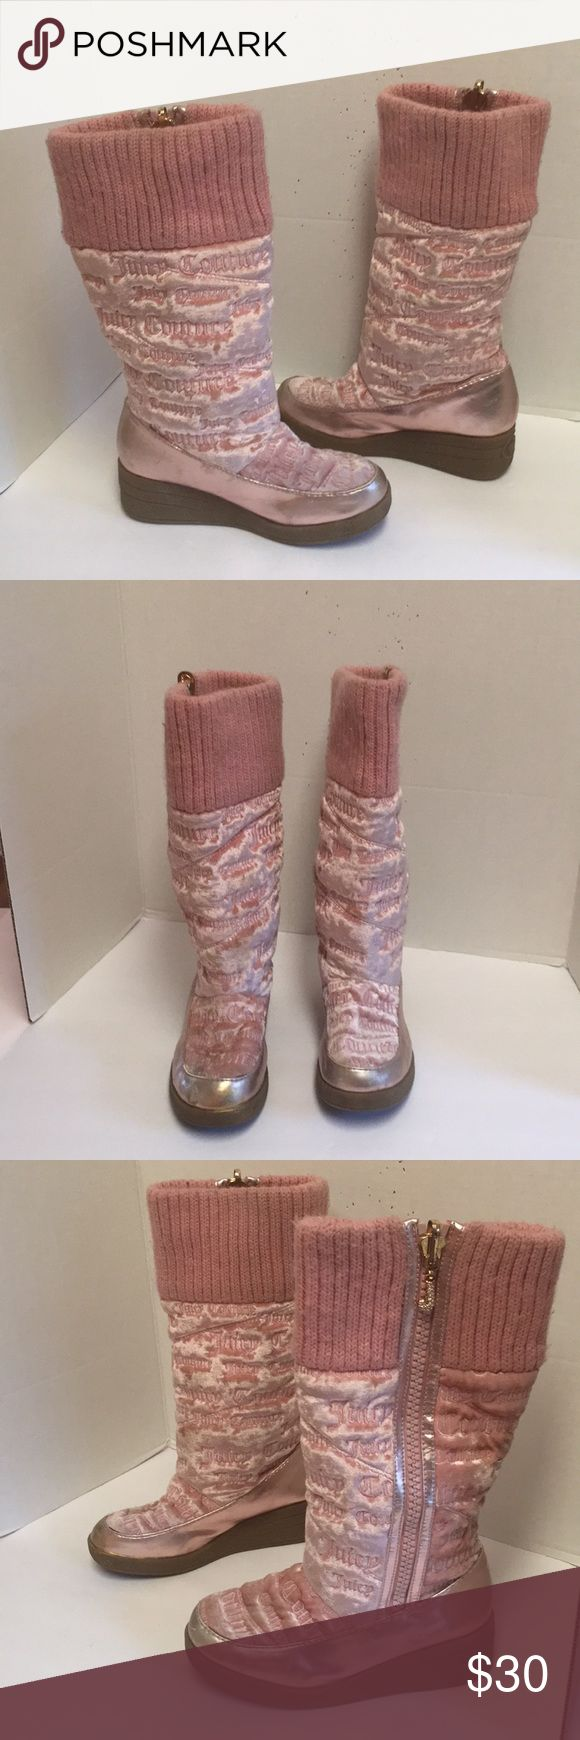 Juicy couture pink monogram boots Super cute pair of girls size for Jessica tour pink boots. Below are like fabric with patent leather metallic pink trim. Wedge heel. Zipper with signature zipper Paul. Super cute. They do have some scuff marks and some spiling at the top but still look great. Juicy Couture Shoes Boots